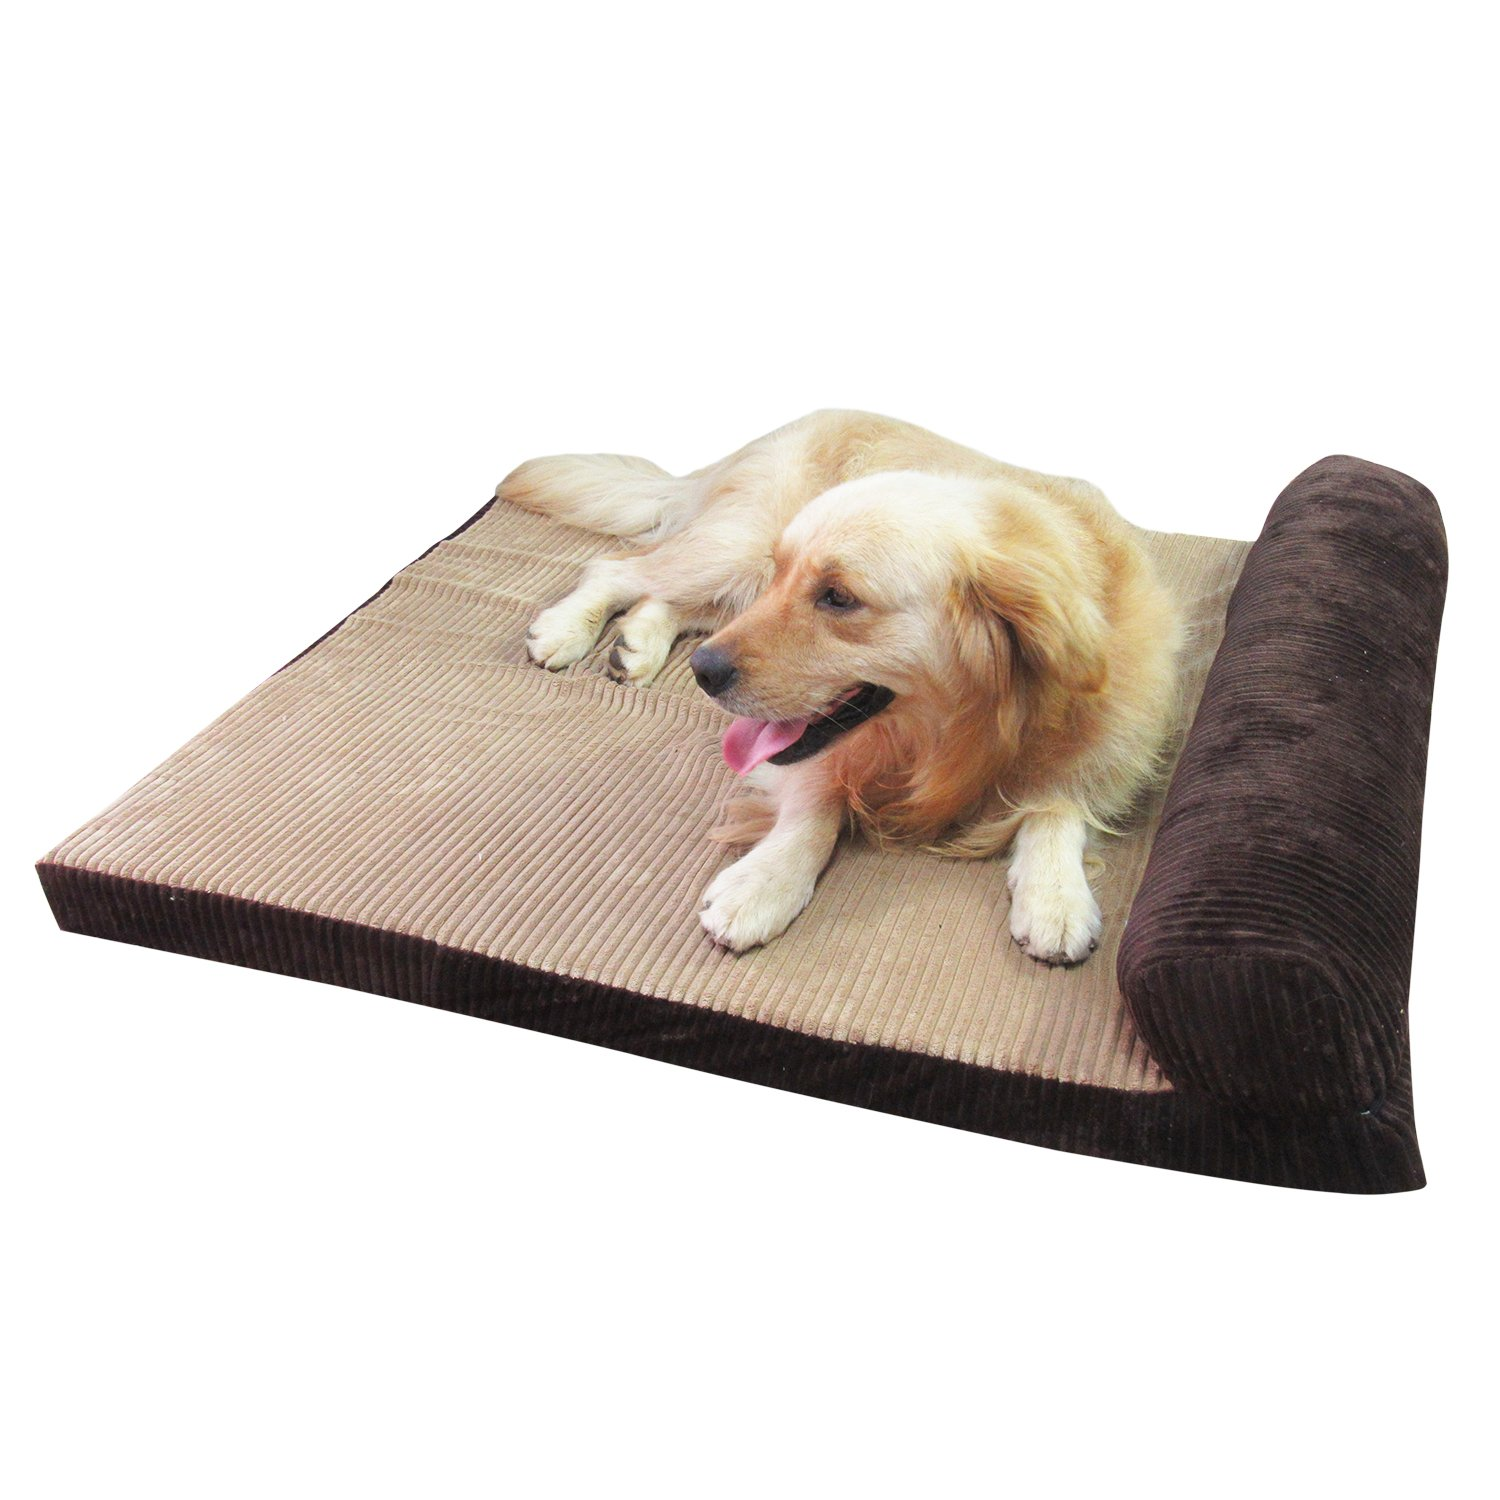 Coffee XL = 110 X 95 X 7 CM Coffee XL = 110 X 95 X 7 CM AcornPets® B-1302 Extra Large Deluxe Coffee Brown 7 CM Extra Thickness Memory Foam Dog Sofa Bed Fleece 110 x 95 CM For Large Dogs,Premium Corduroy and Smooth Velveteen Fabric, Detachable and Wash